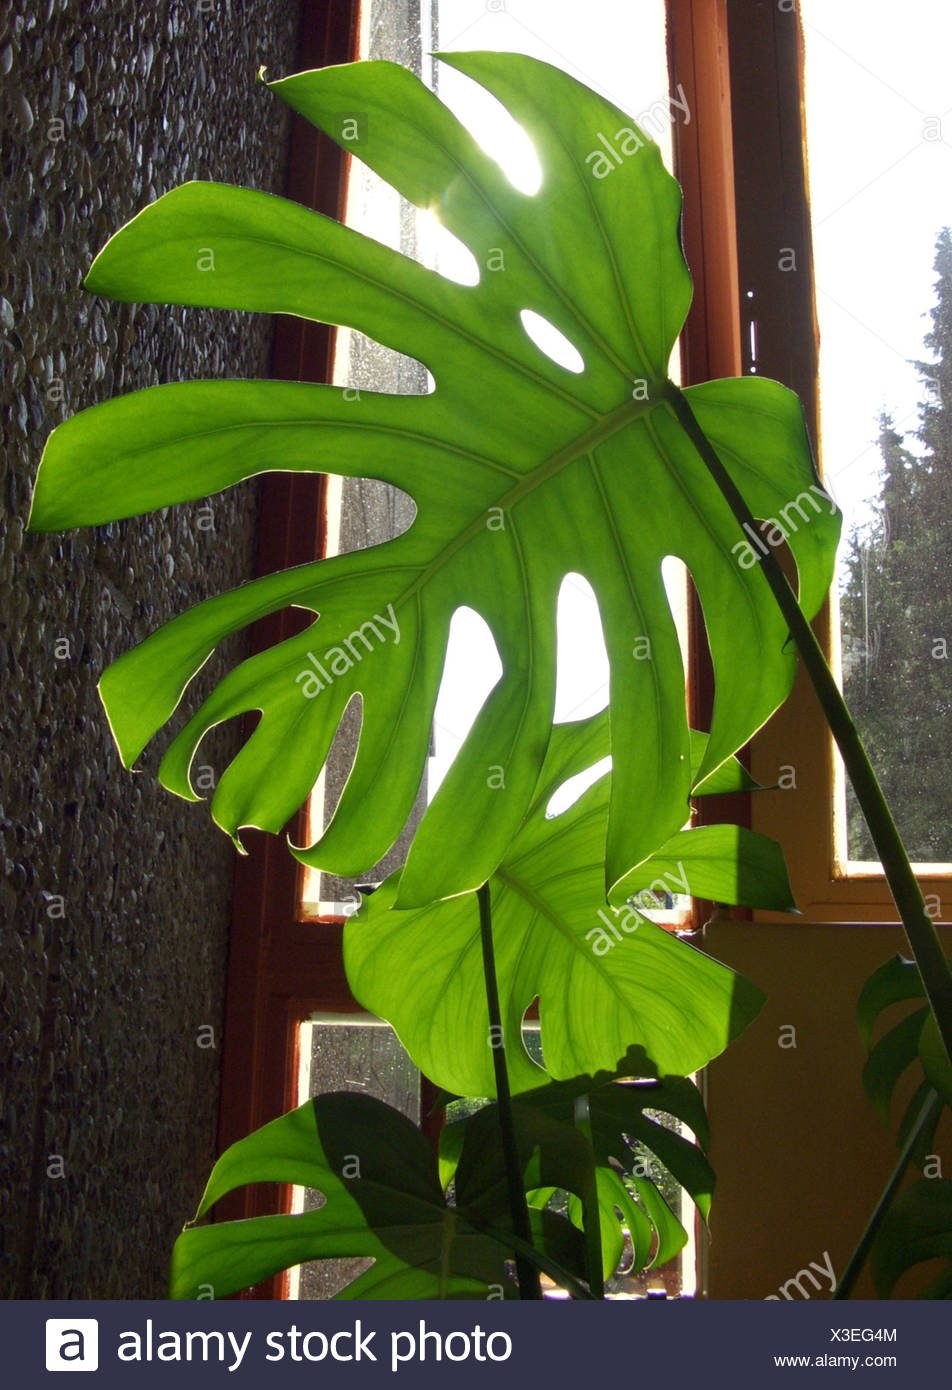 Ceriman, Swiss cheese plant, Split-leaf philodendron, Window